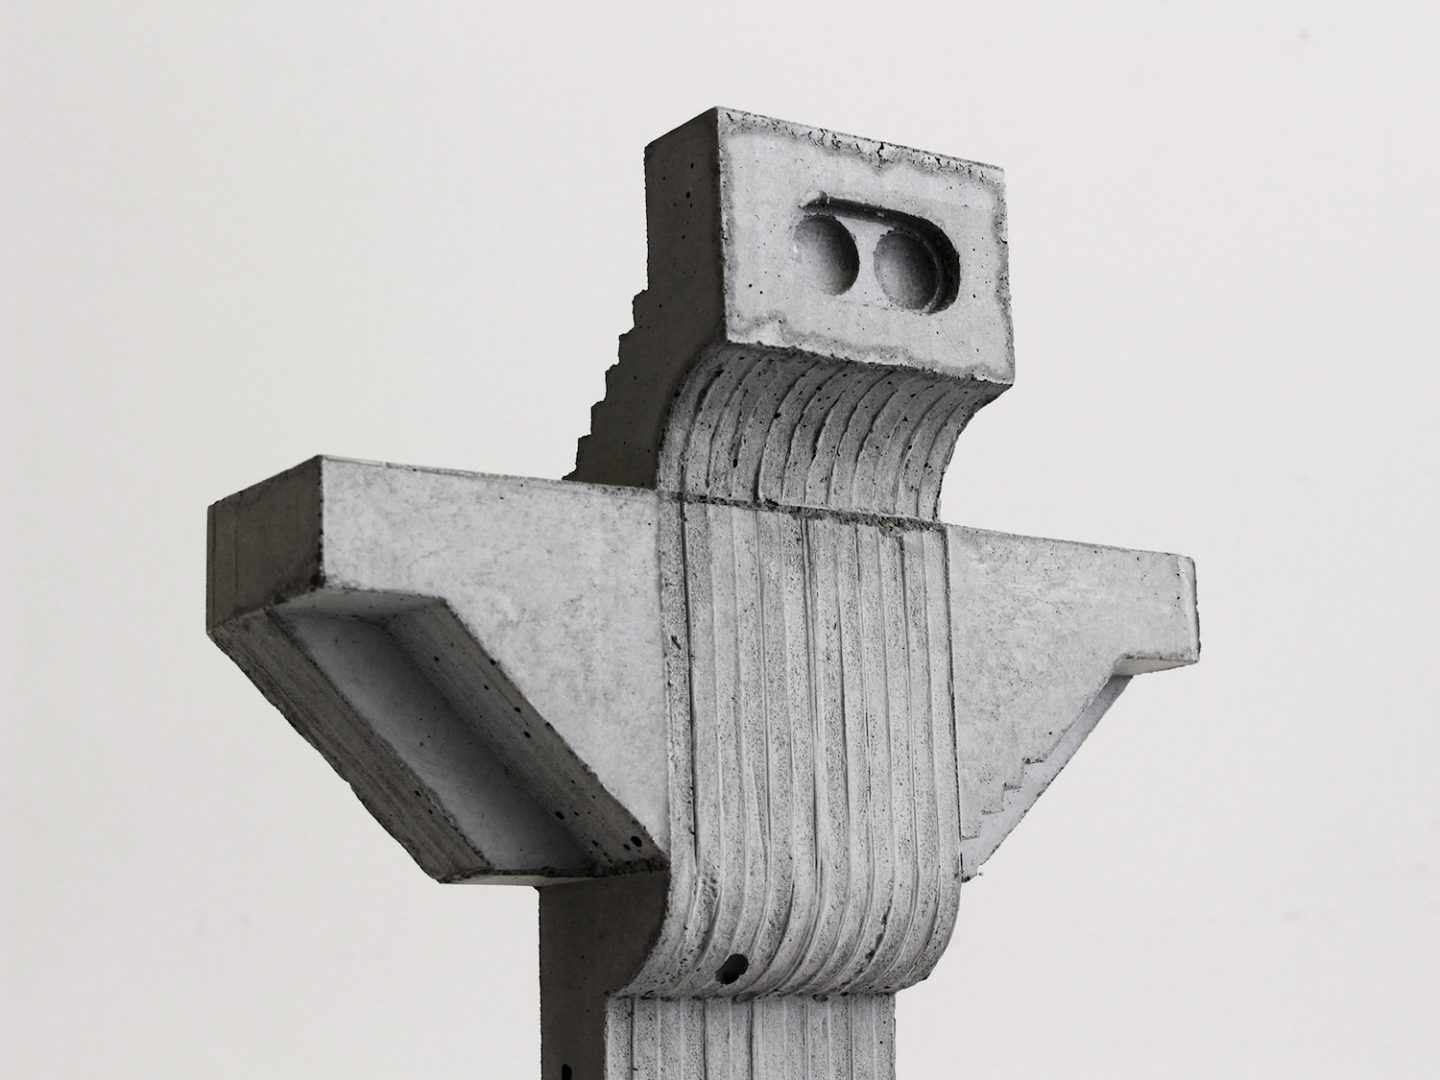 iGNANT_Art_Concrete_Modular_Sculptures_David_Umemoto01